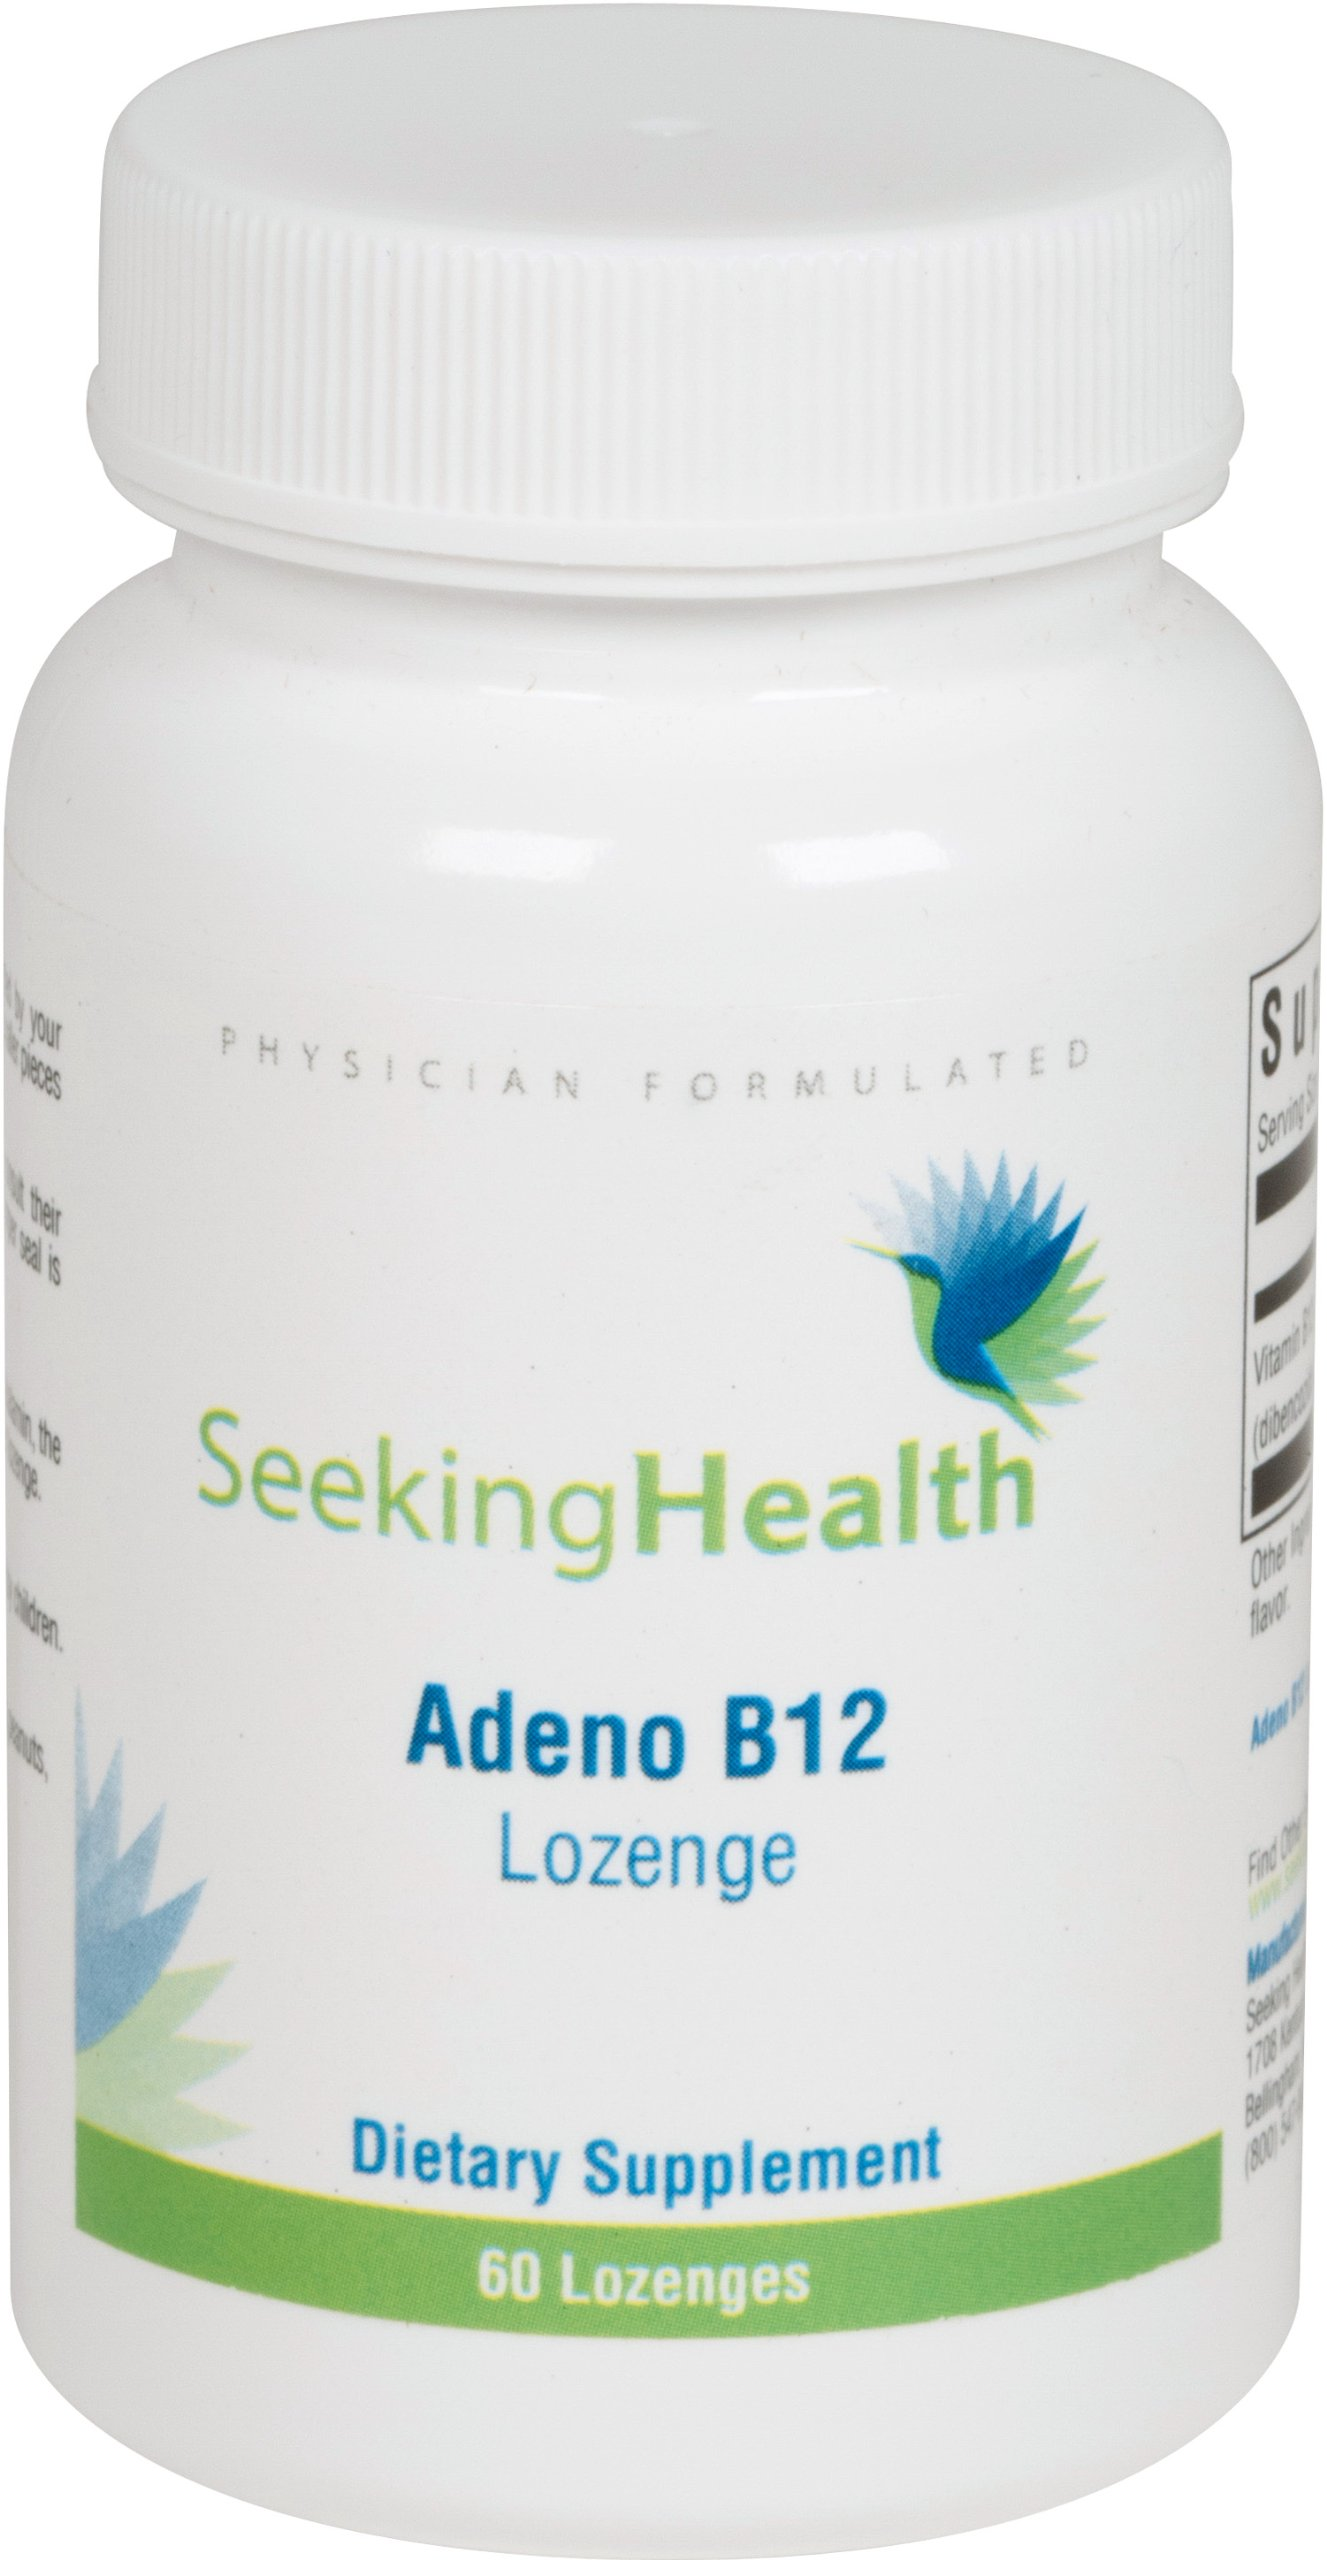 Adeno B12 Lozenge | 3,000 mcg Adenosylcobalamin | Mitochondrial Form of Vitamin B12 | 60 Lozenges | Free of Common Allergens and Magnesium Stearate |Seeking Health